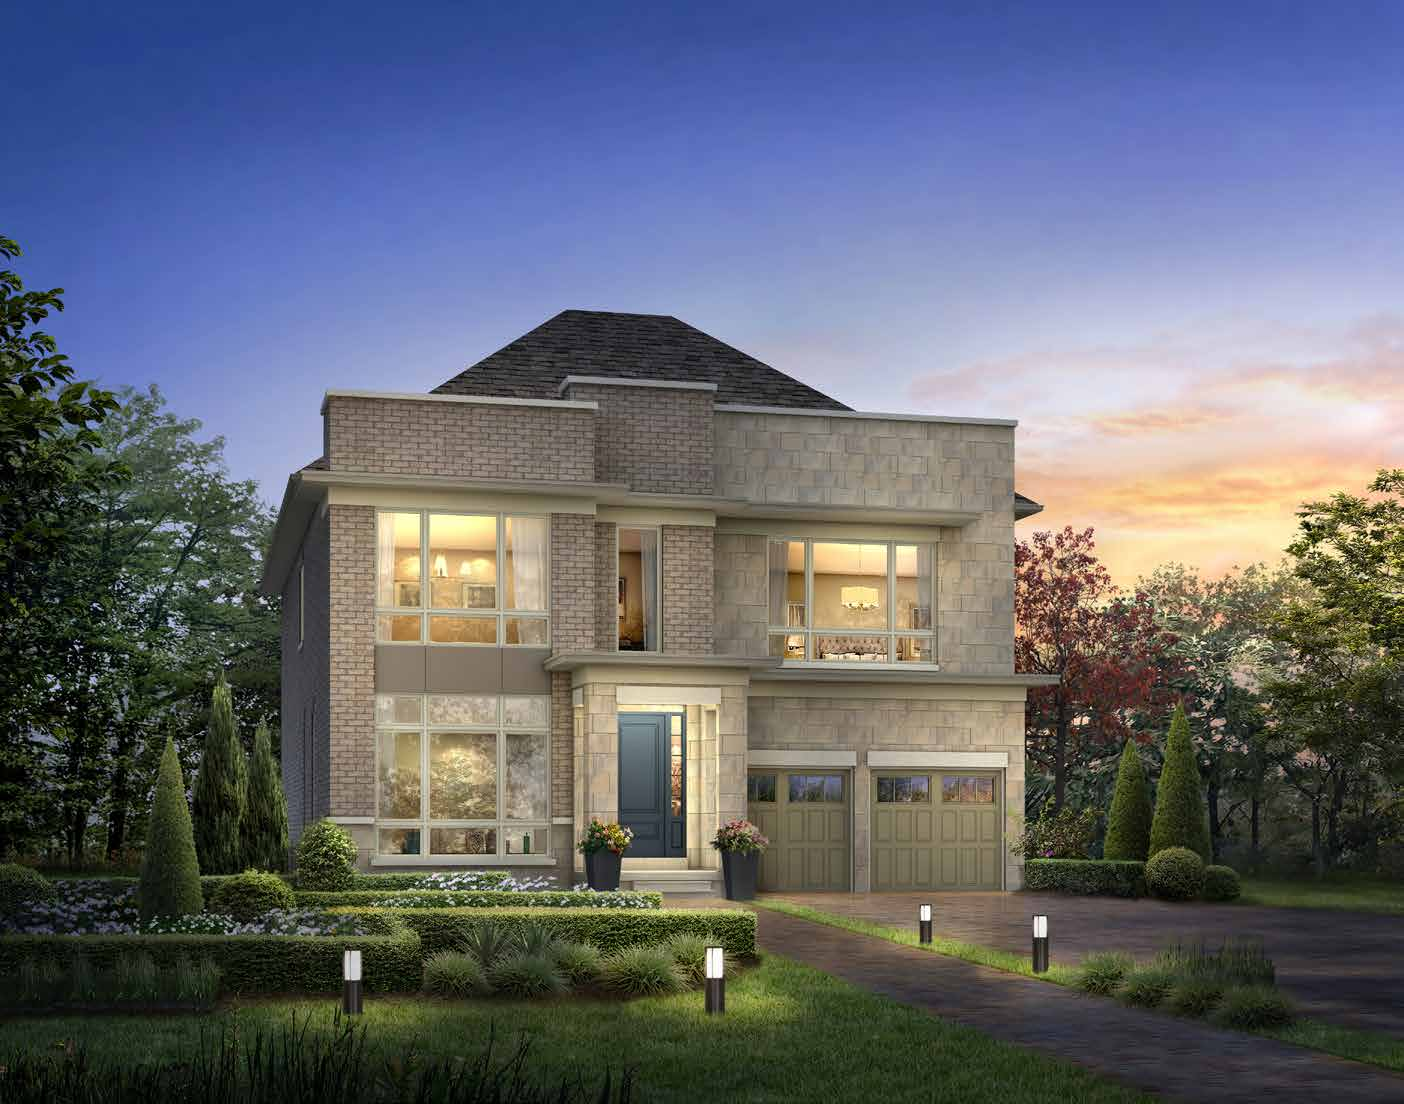 ELEVATION C 3786 sq. ft.